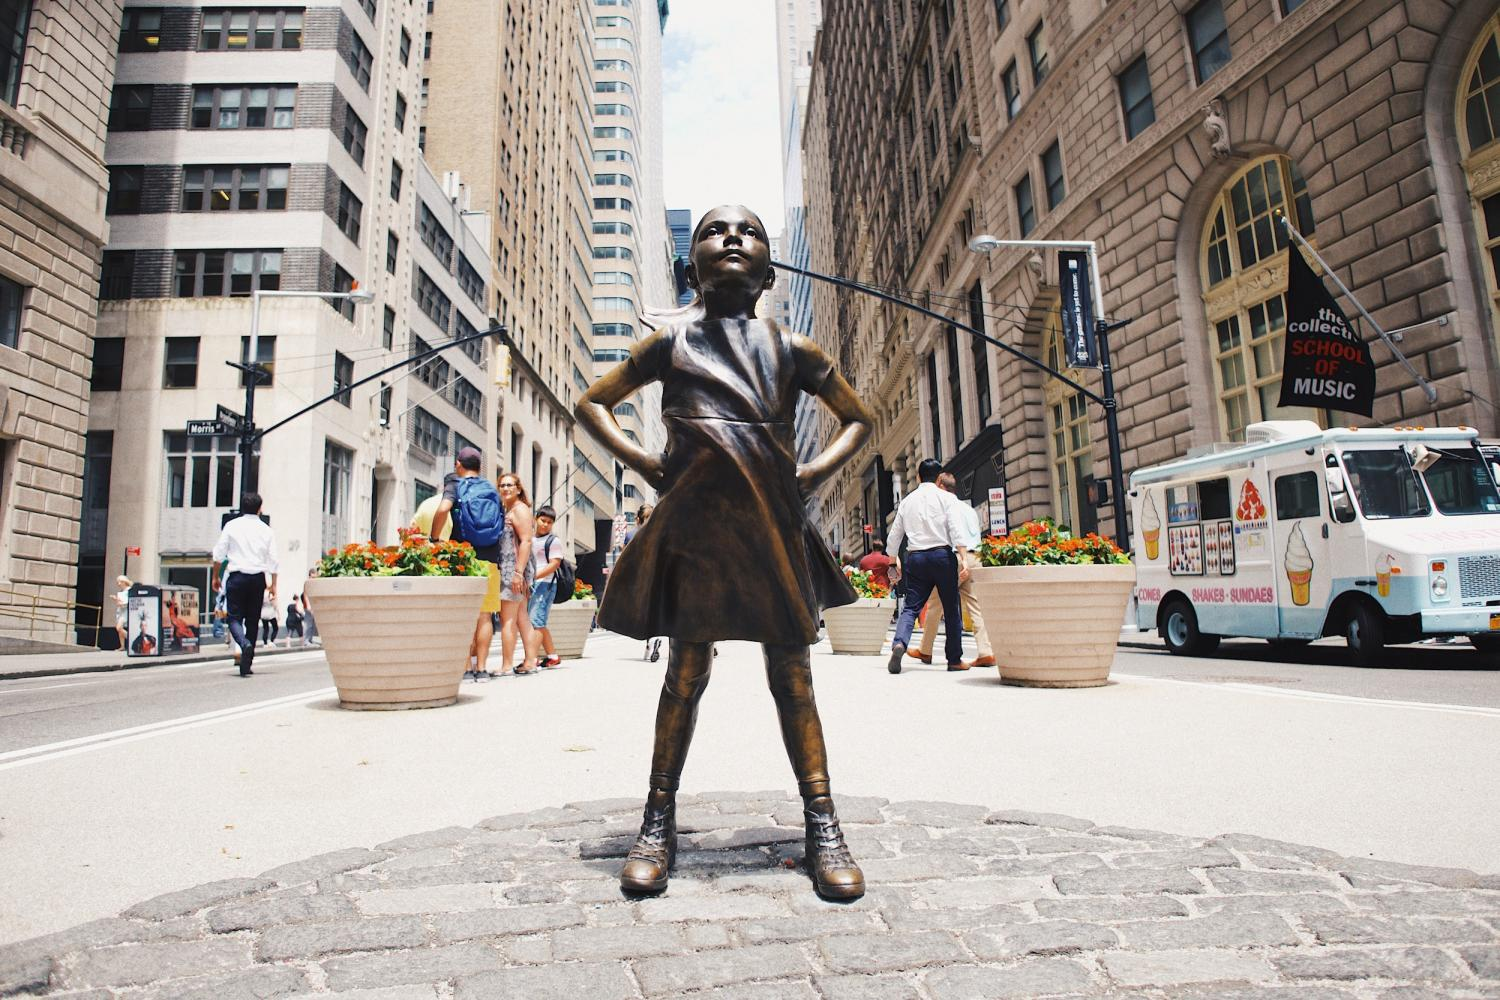 Fearless Girl statue - Goldman Sachs wants more women on boards